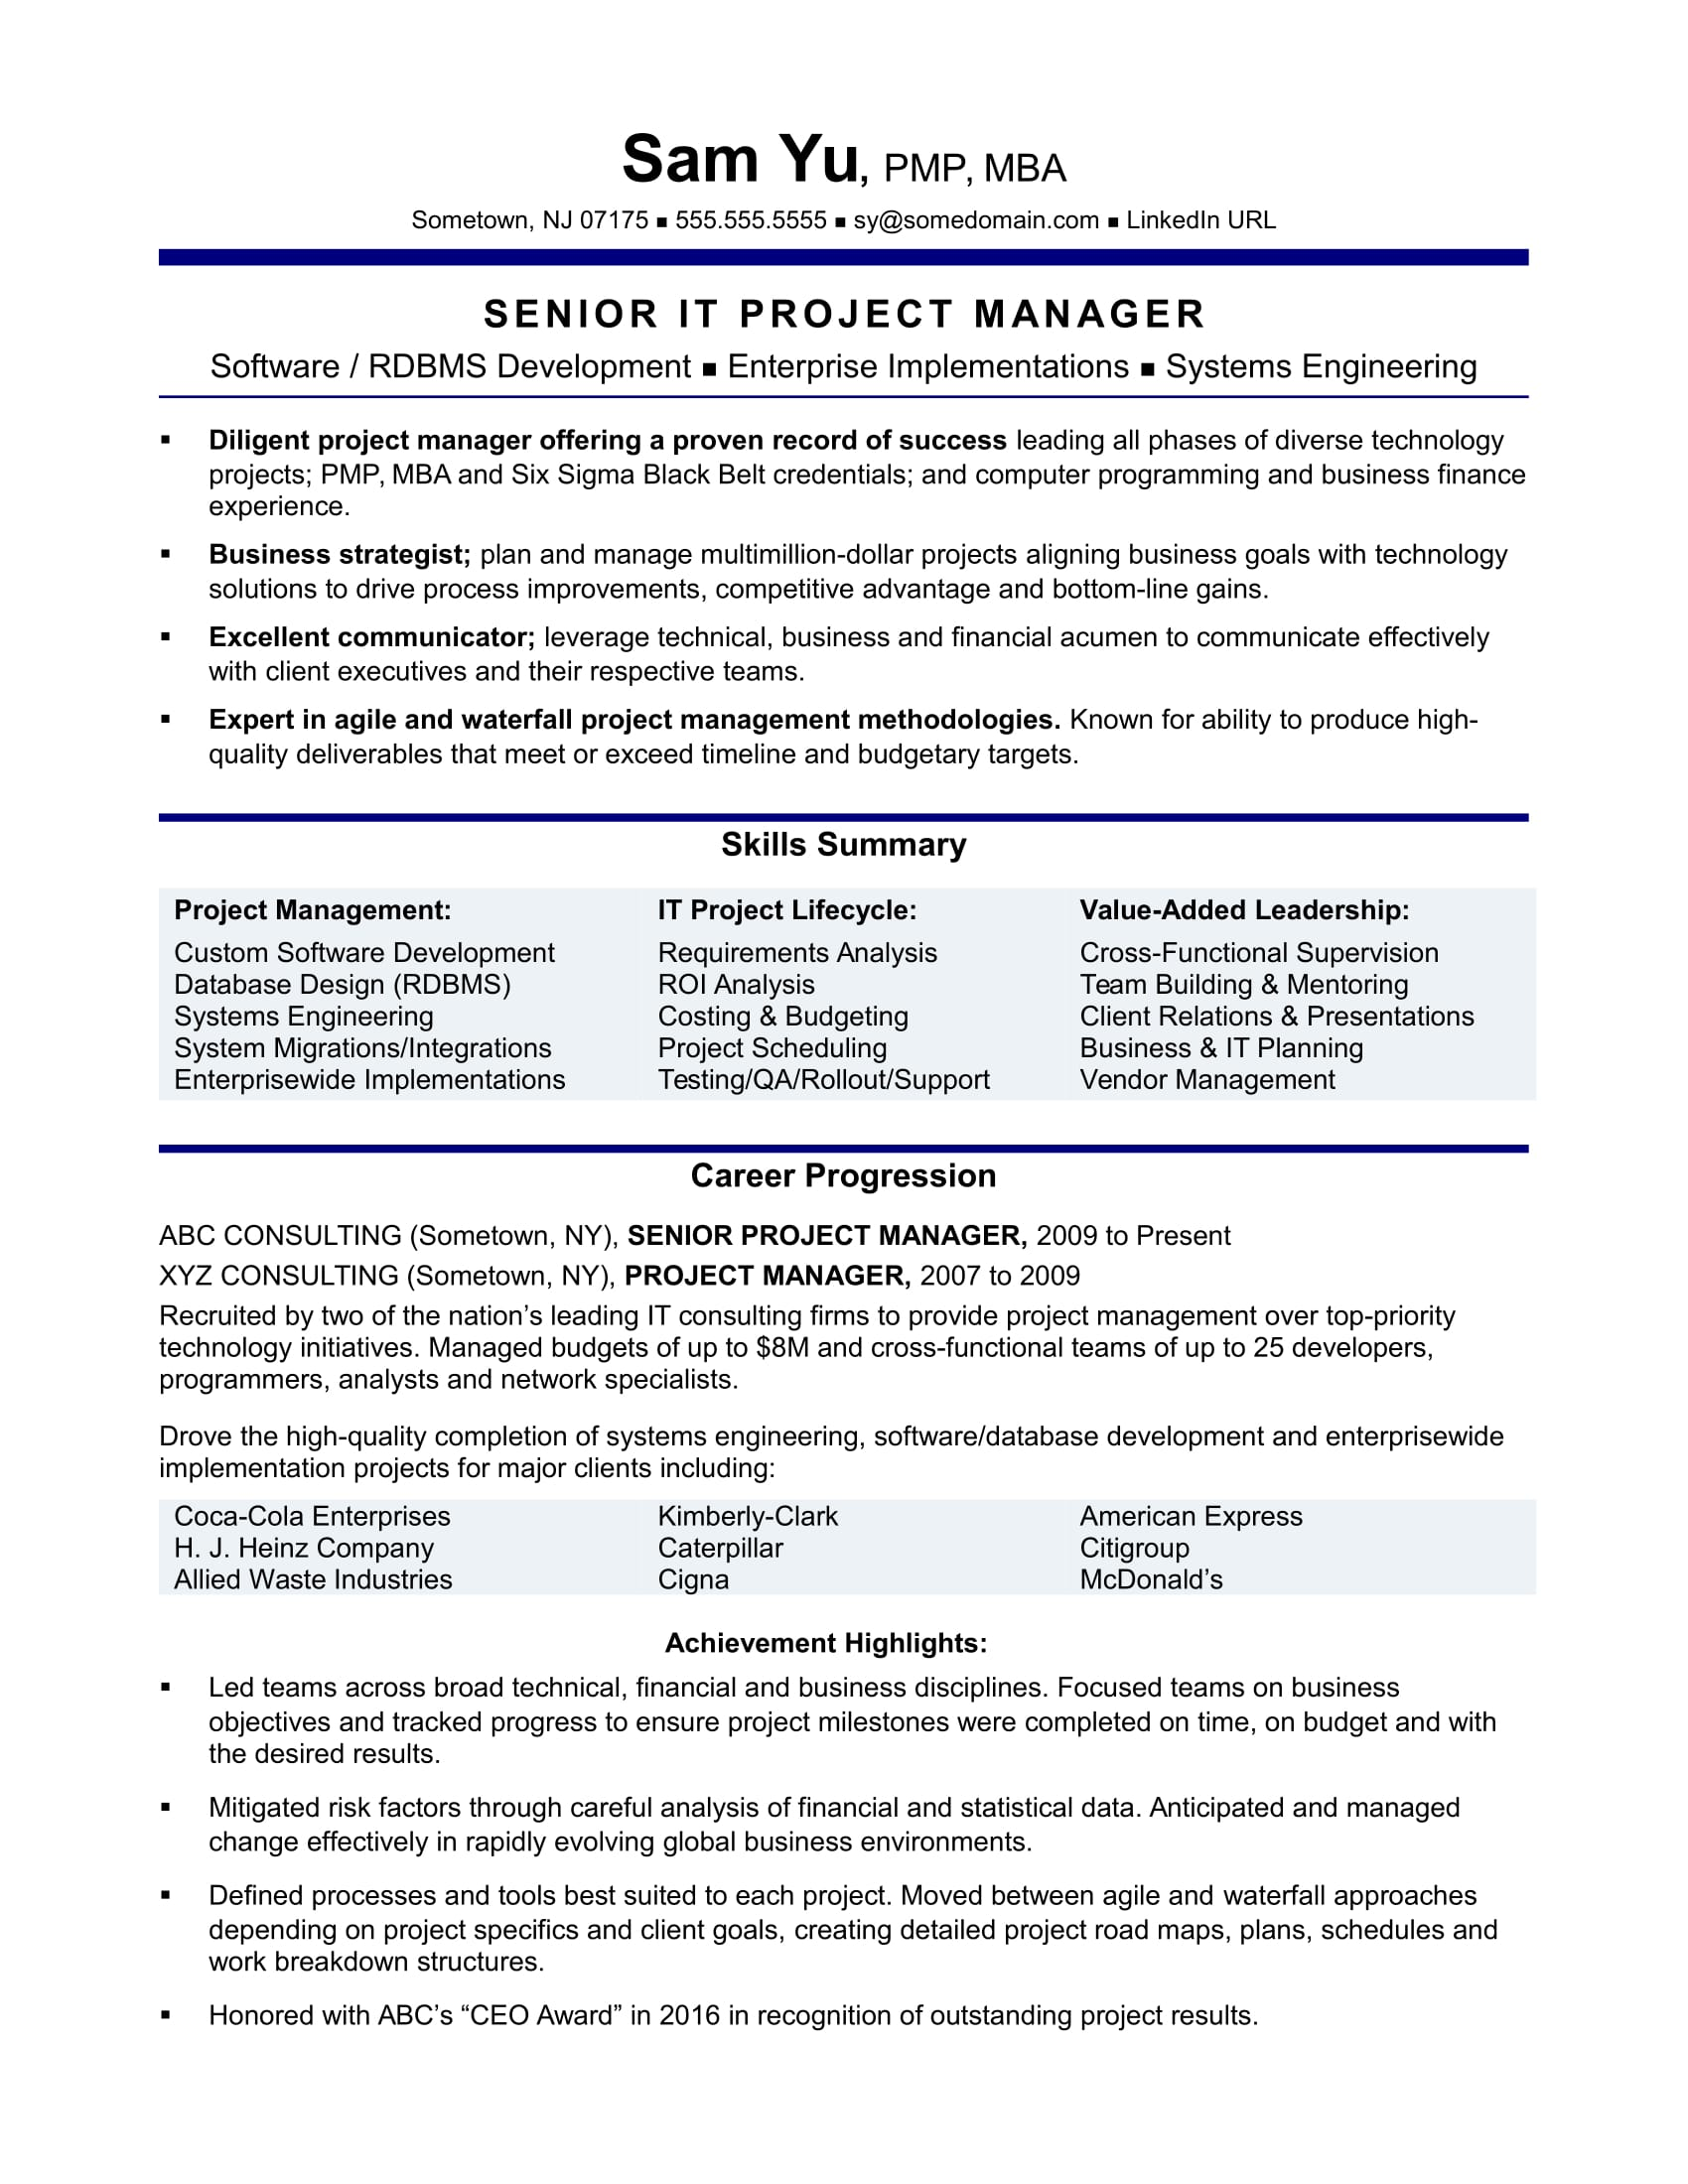 Good Experienced IT Project Manager Resume Sample With Software Project Manager Resume